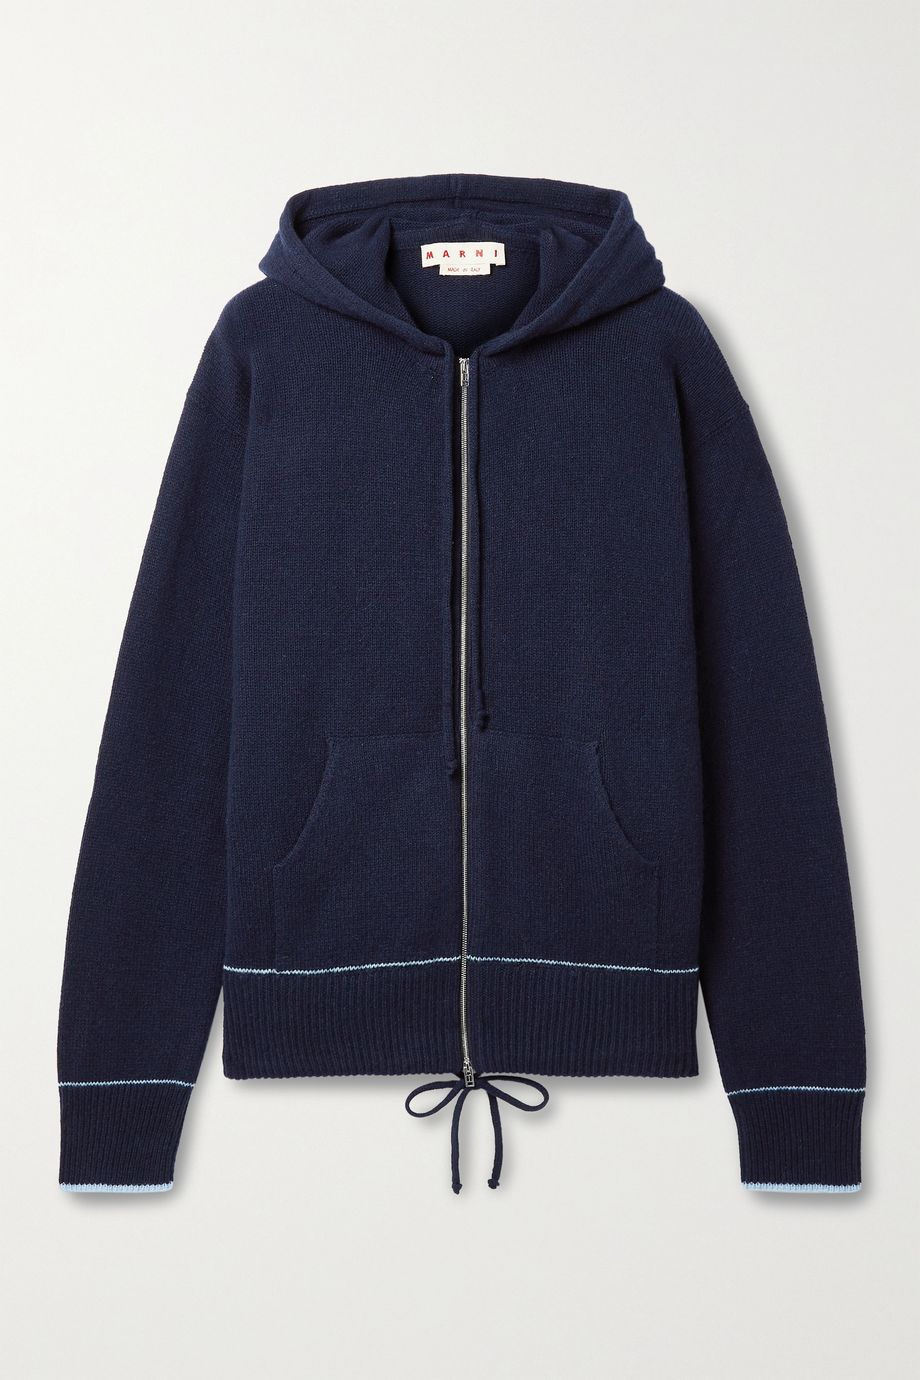 Marni Cashmere and wool-blend hoodie